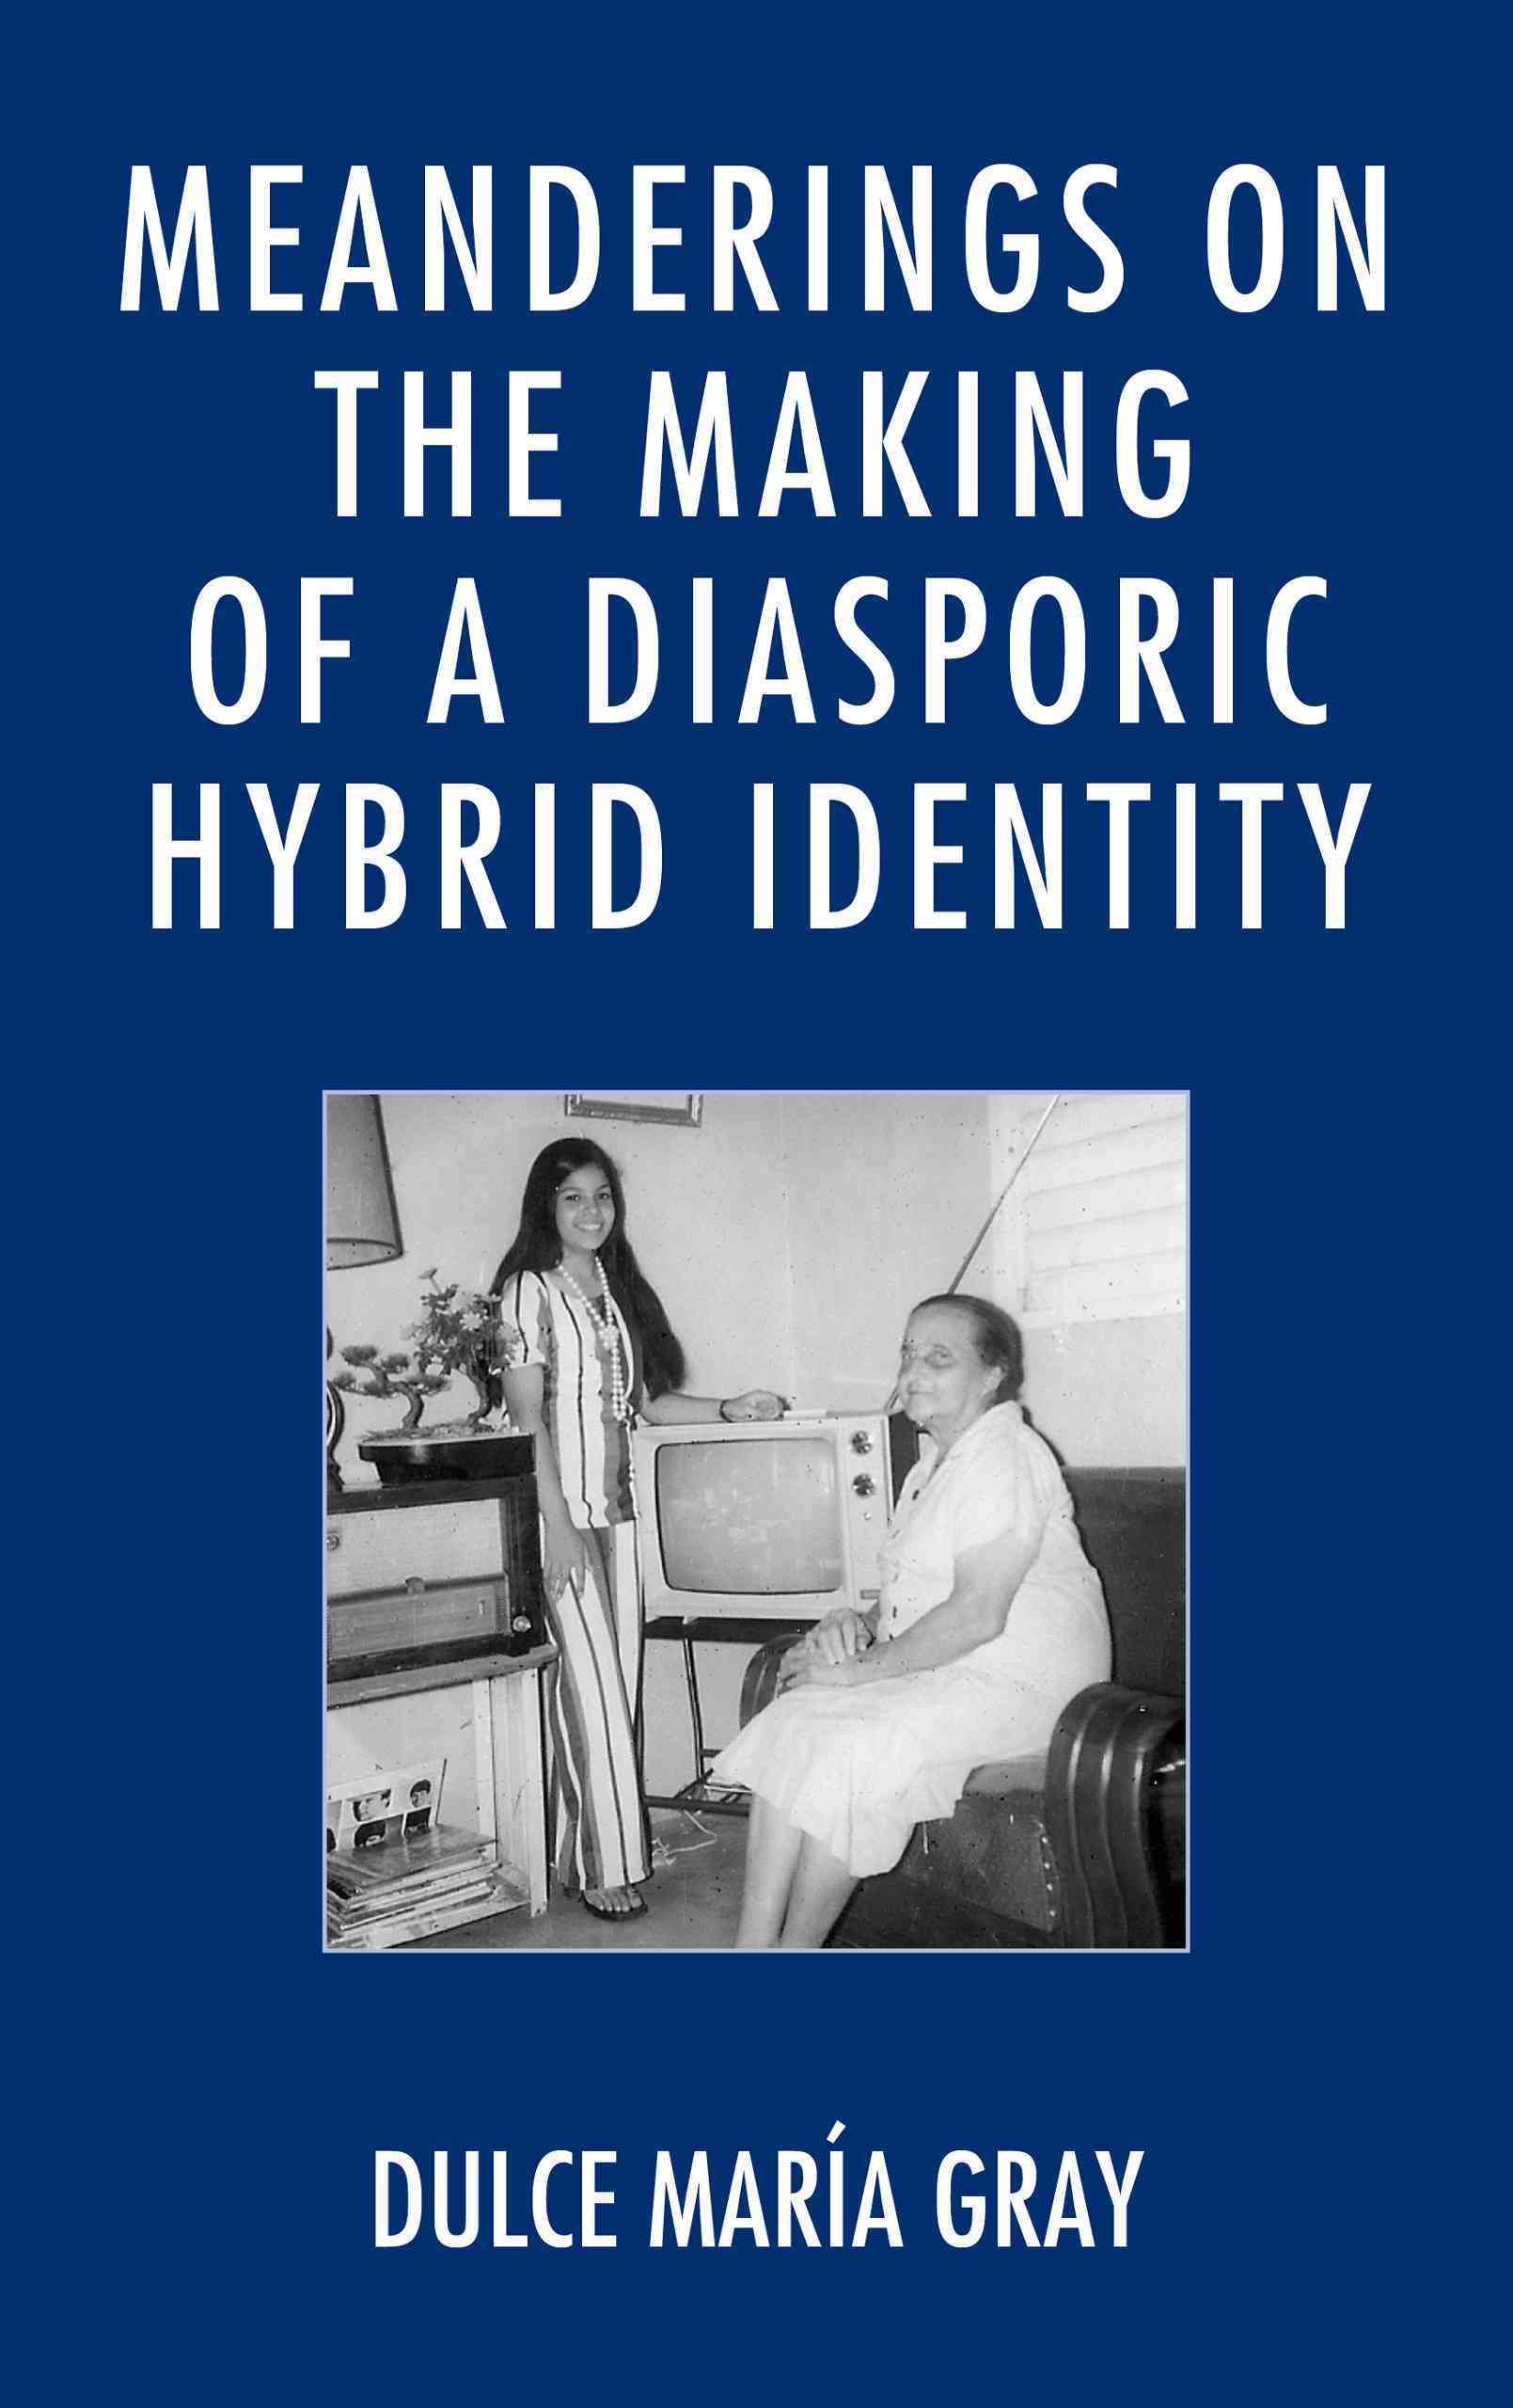 Meanderings on the Making of a Diasporic Hybrid Identity (Hardcover)